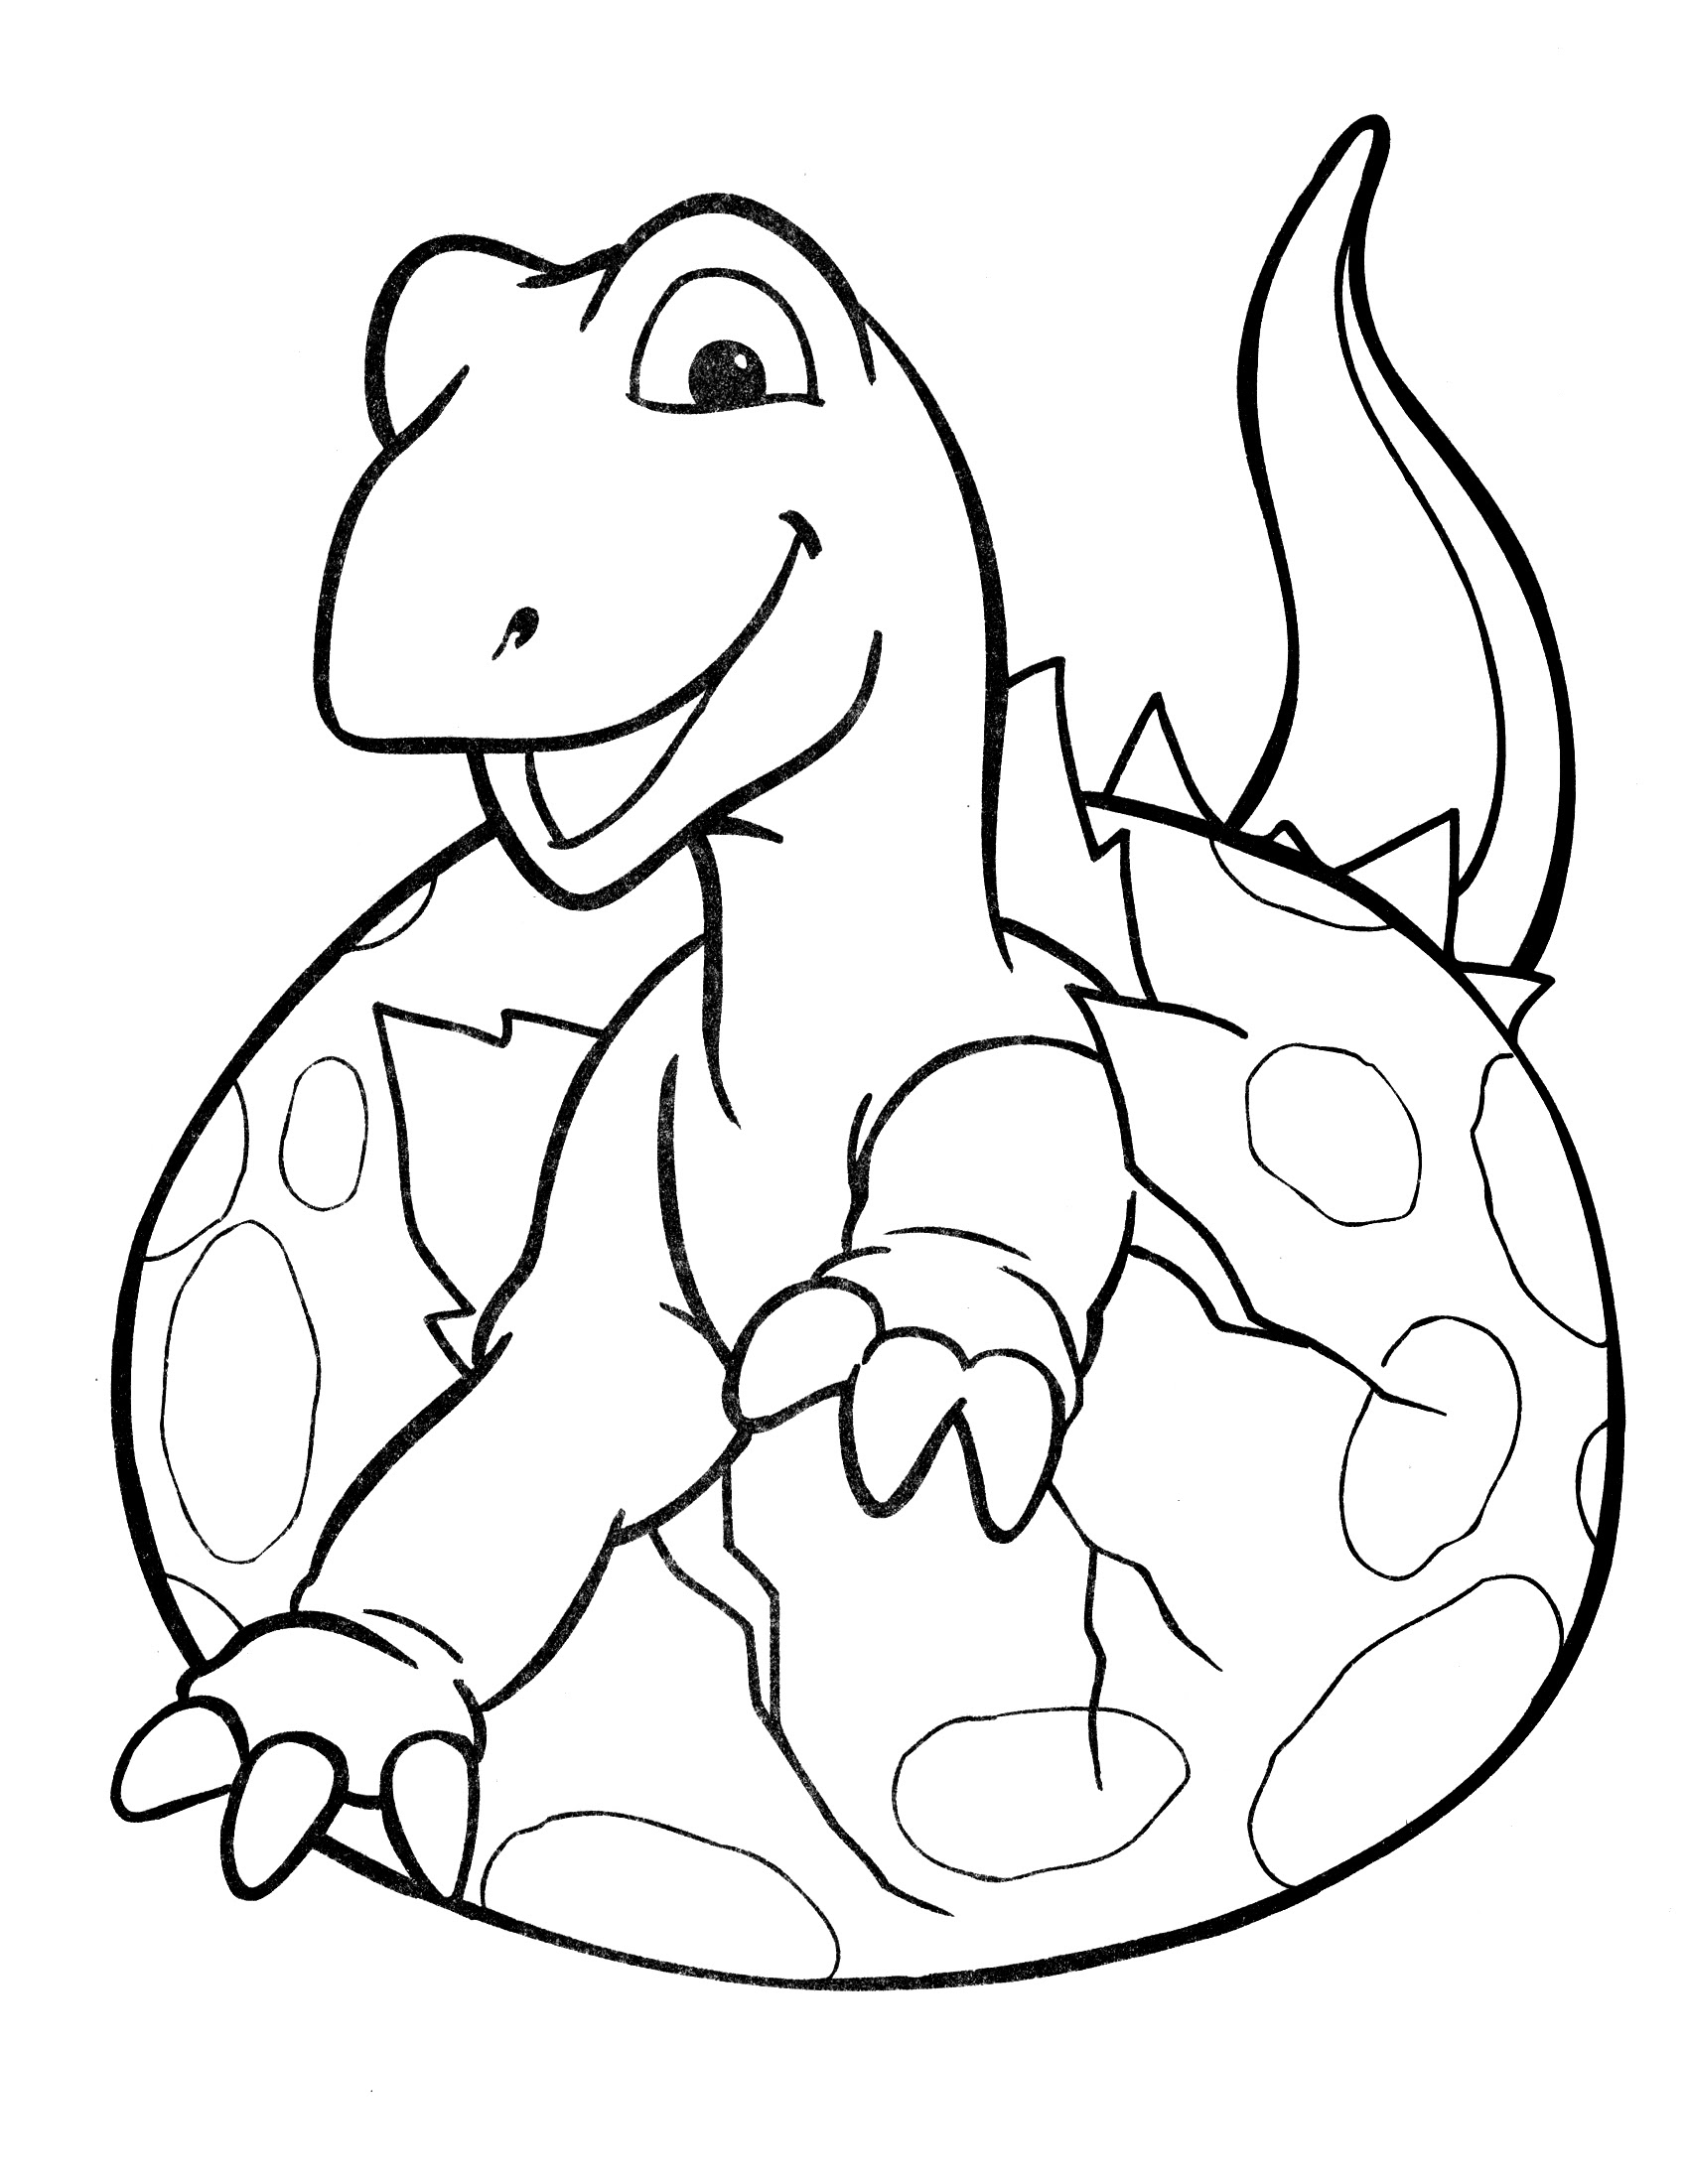 880 Rainbow Coloring Pages Crayola Download Free Images